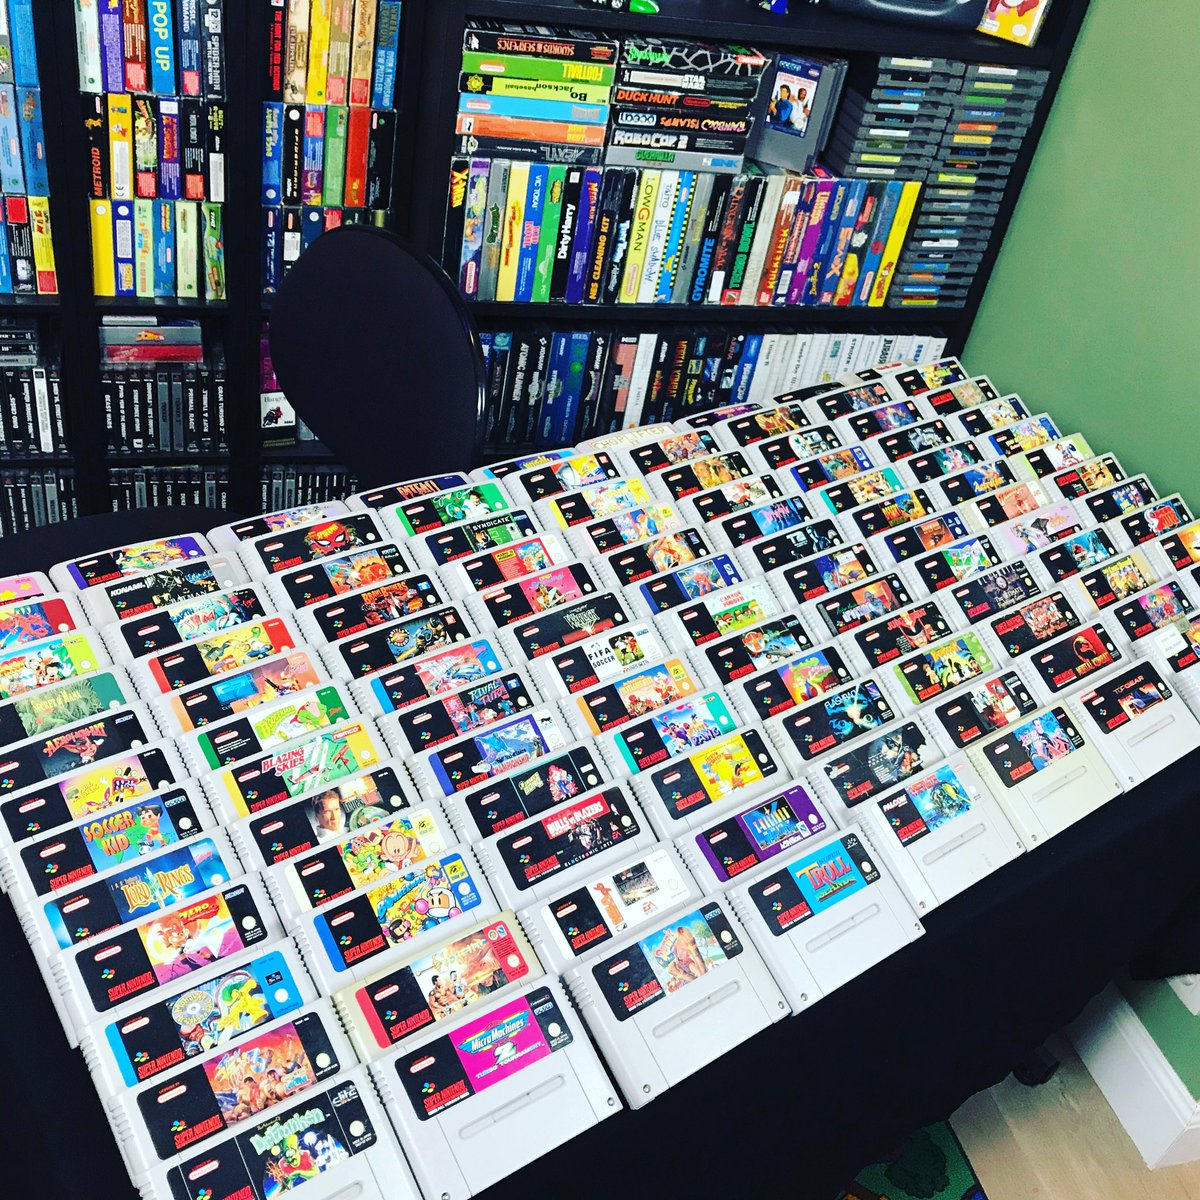 test Twitter Media - RT @edsretrogeekout: Games, games, games! #snes #snesclassic #snesgames #supernintendo #retrogaming #retrogames #edsretrogeekout #nineties #nostalgia #collector https://t.co/ISNLBubBZh